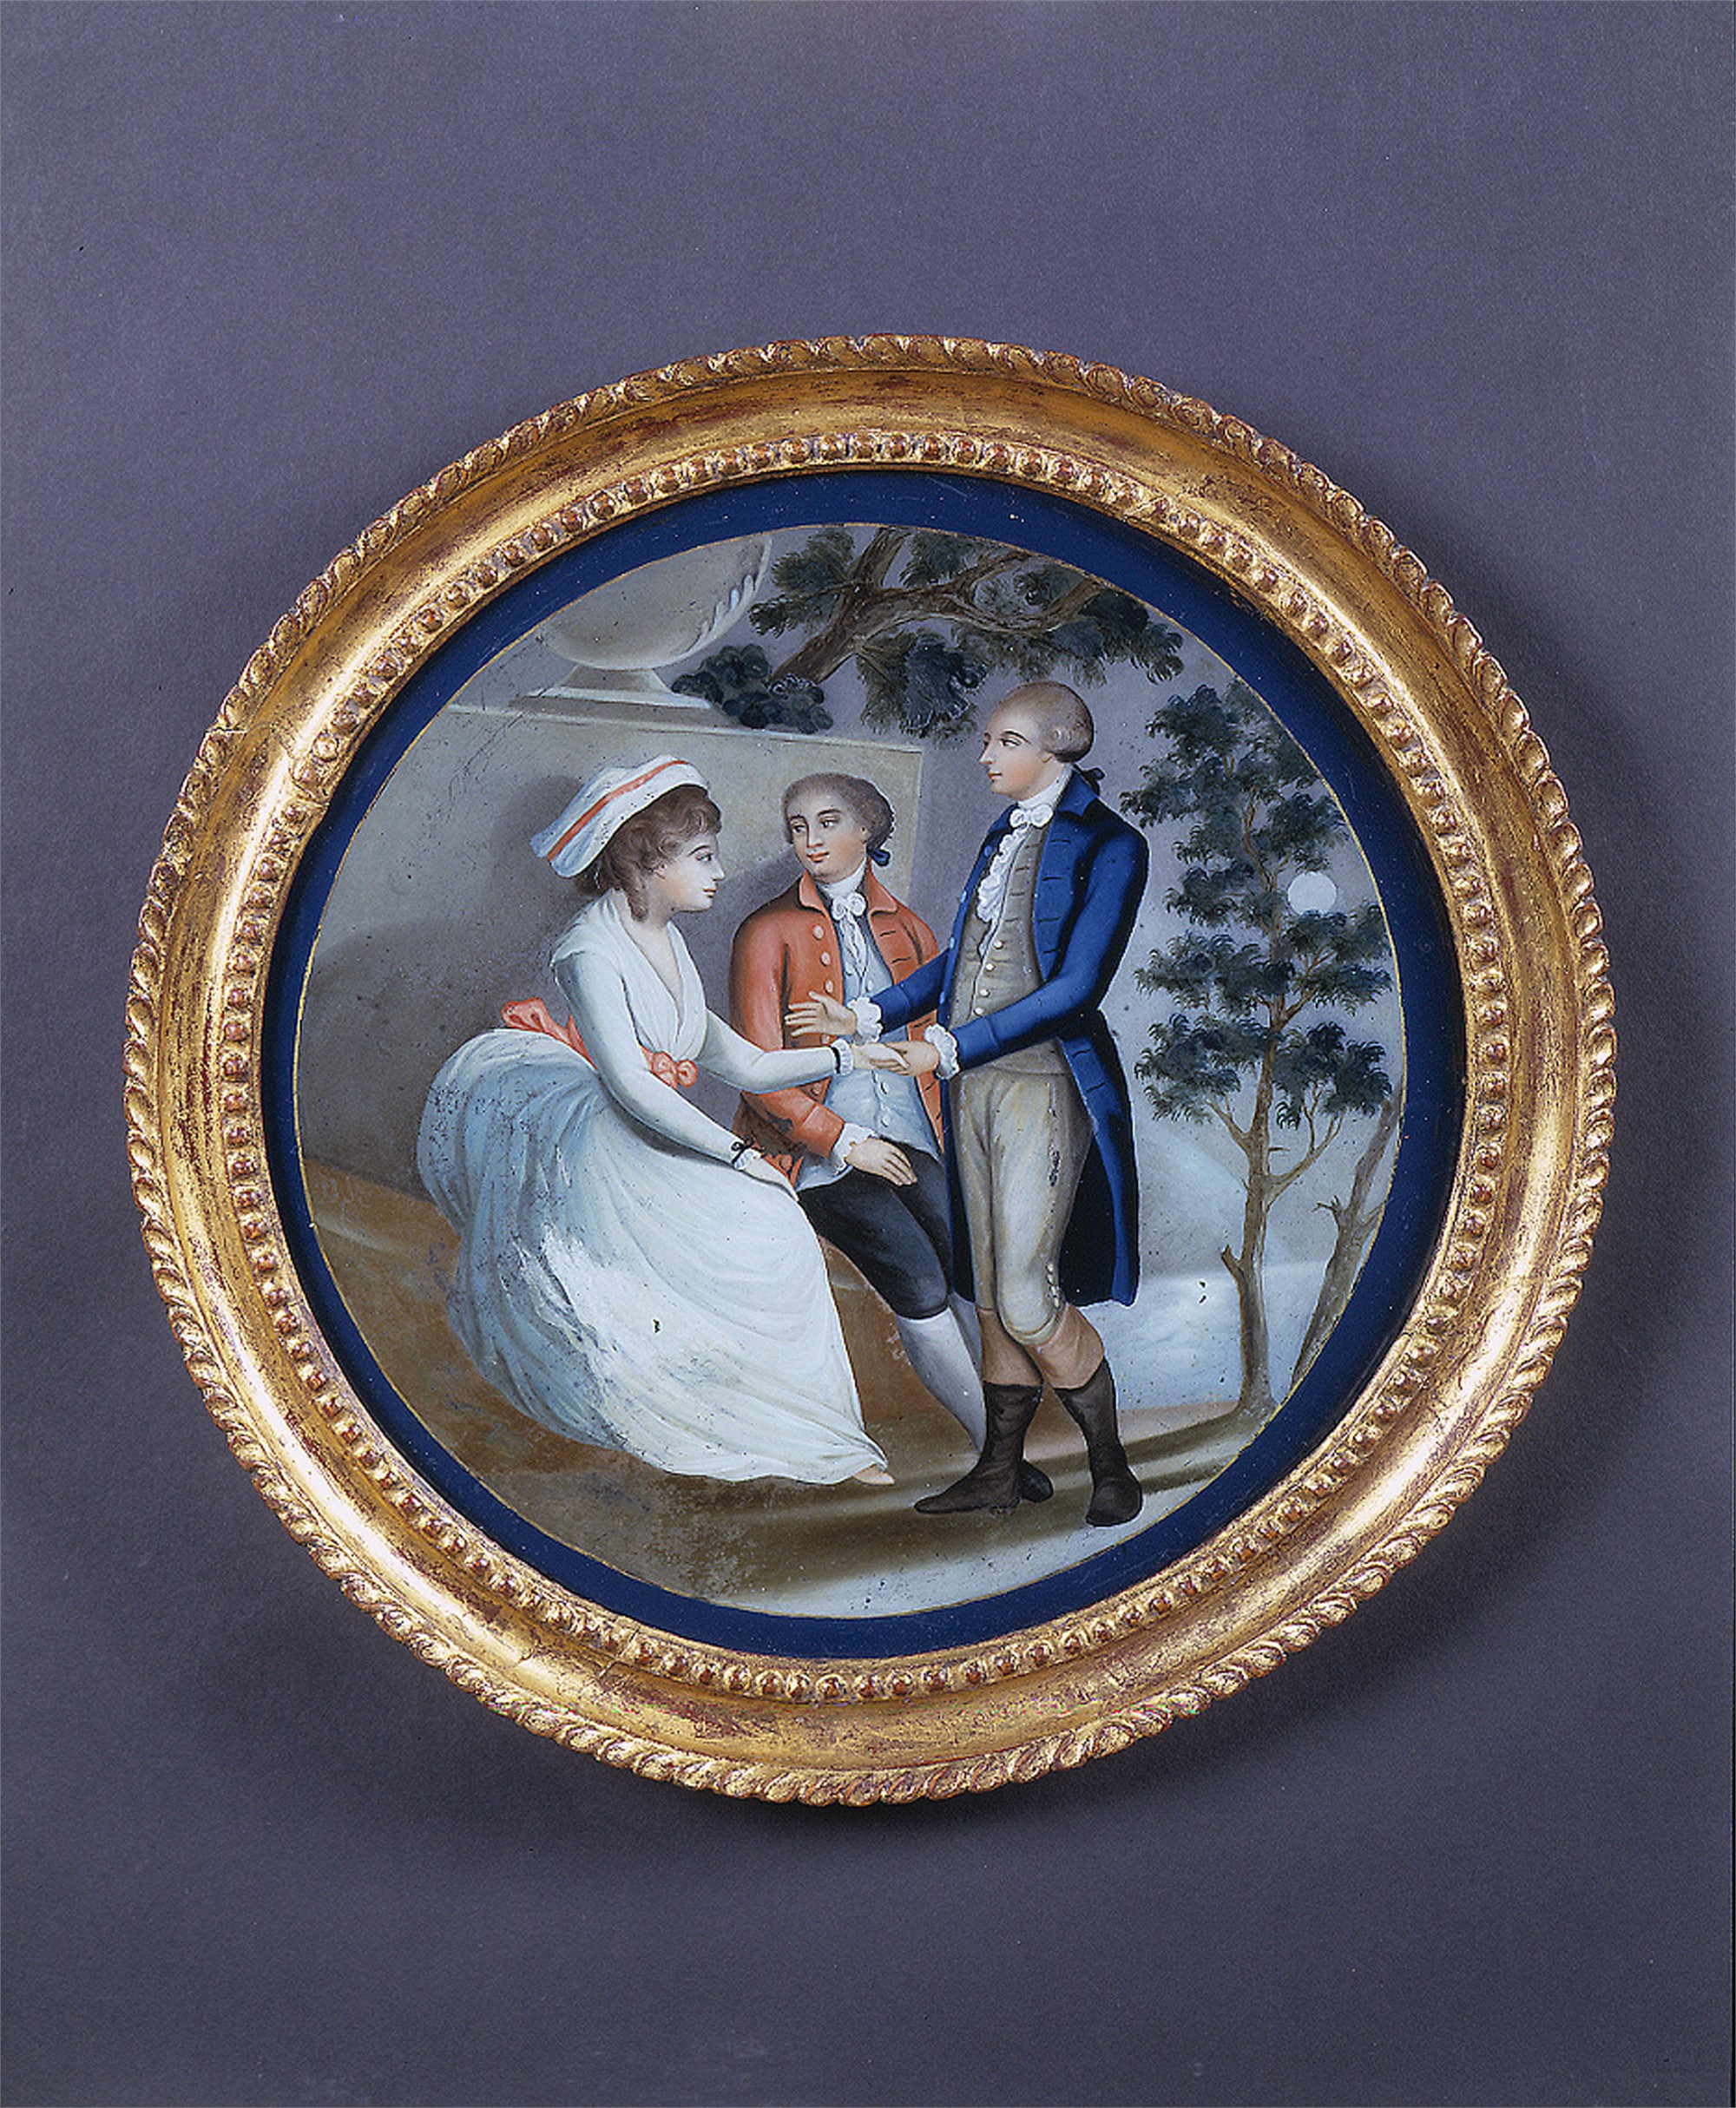 ROUND REVERSE PAINTING ON GLASS WITH TWO MEN COURTING LADY BY TREE